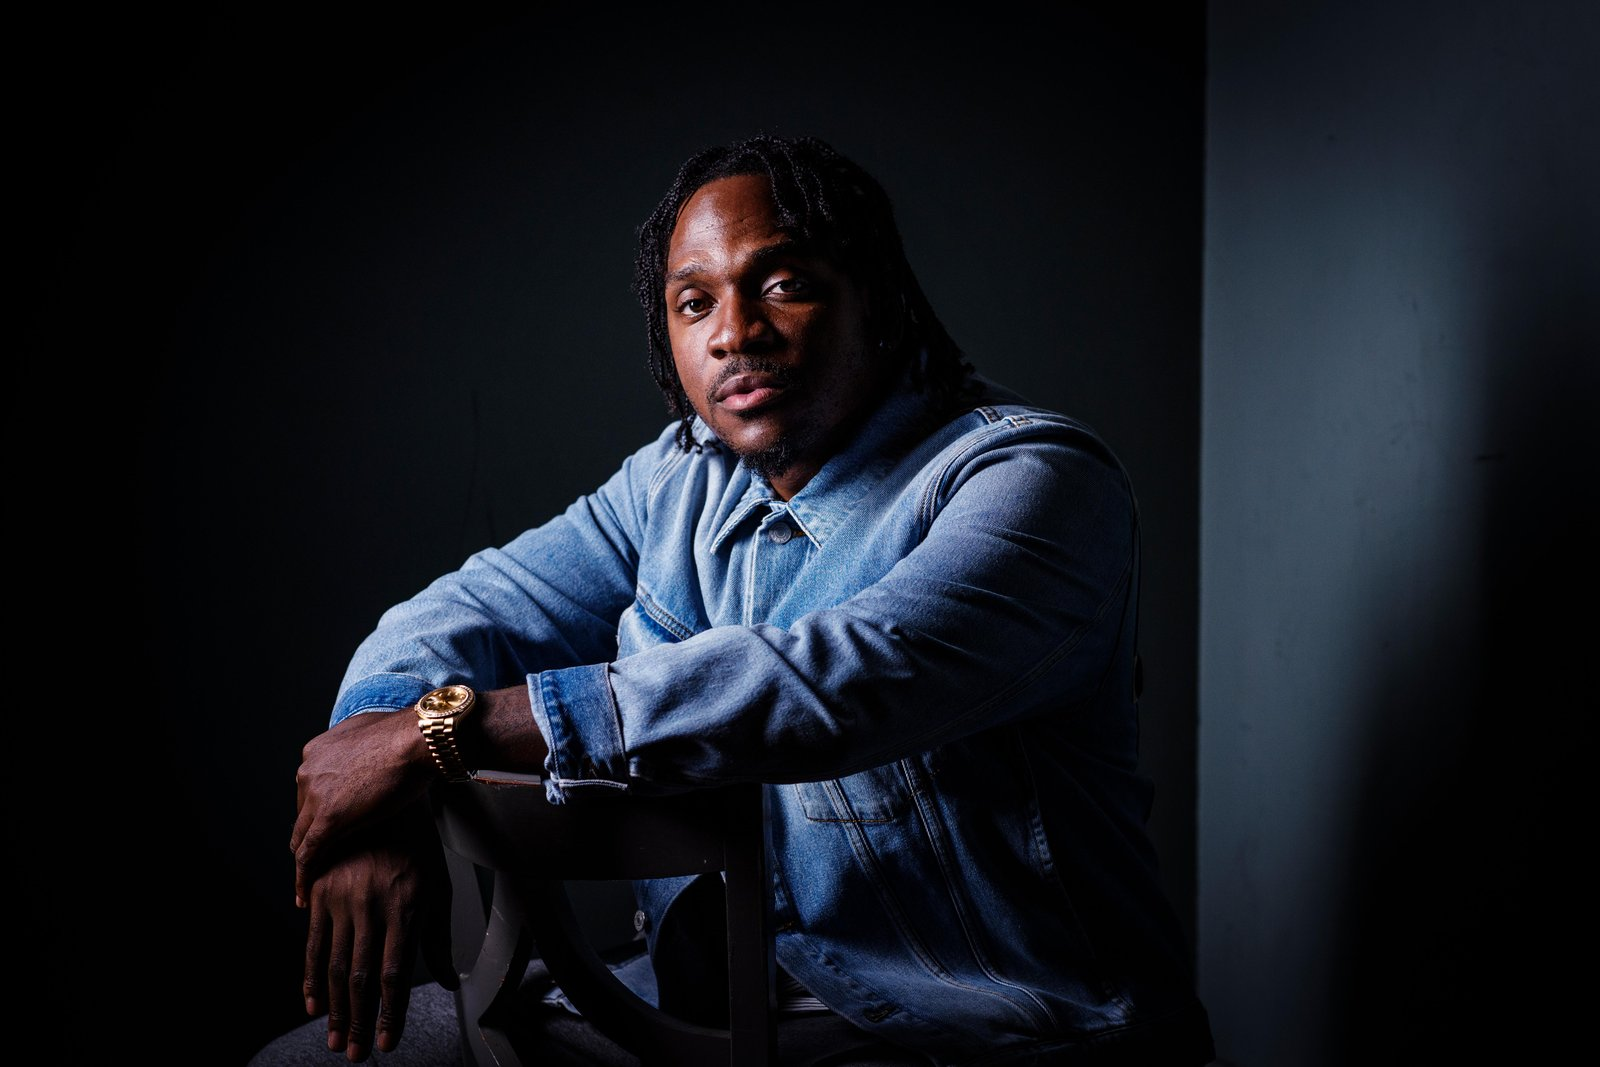 Watch Pusha T Talk About His New Album With Pharrell & Scott Vener pusha t